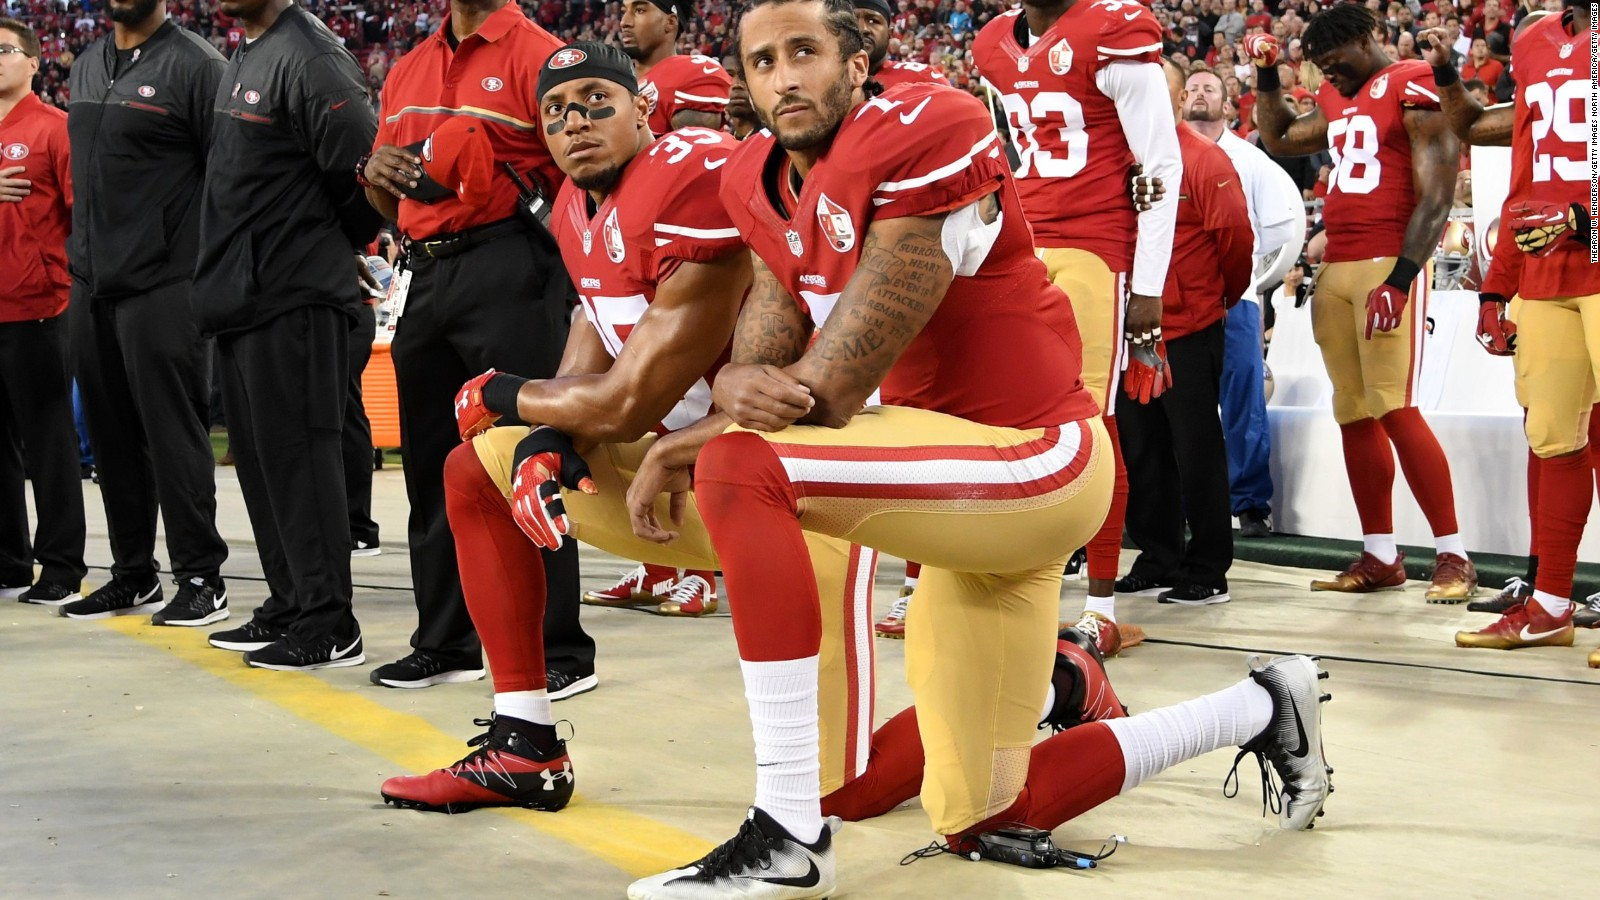 Colin Kaepernick Anthem Protest Reactions On Nfl S Opening Day Cnn